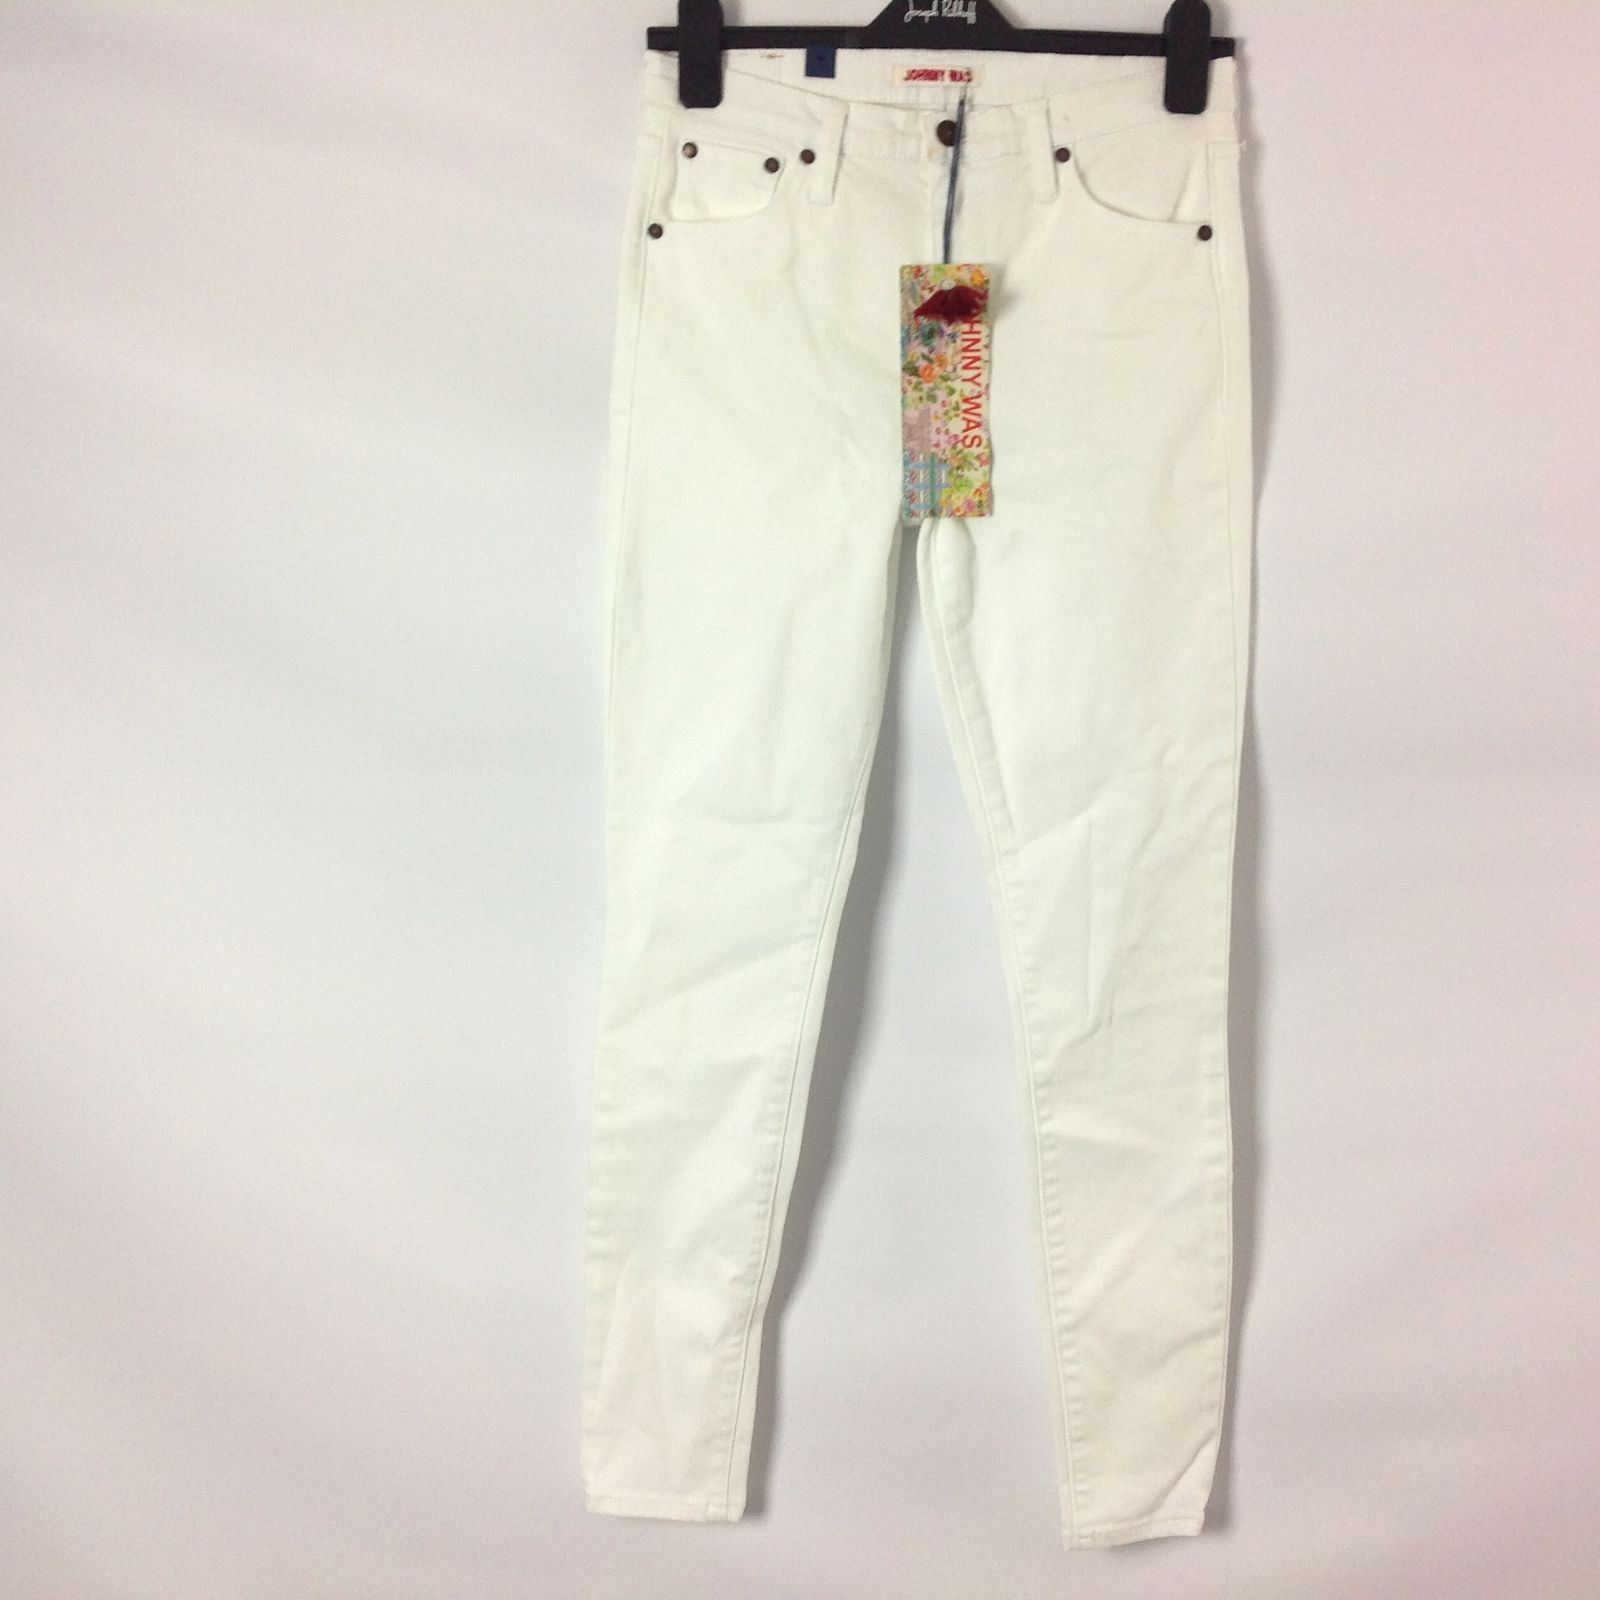 Johnny Was F23 Womens Jeans Cotton Blend Stretch Mid Rise Skinny White 25